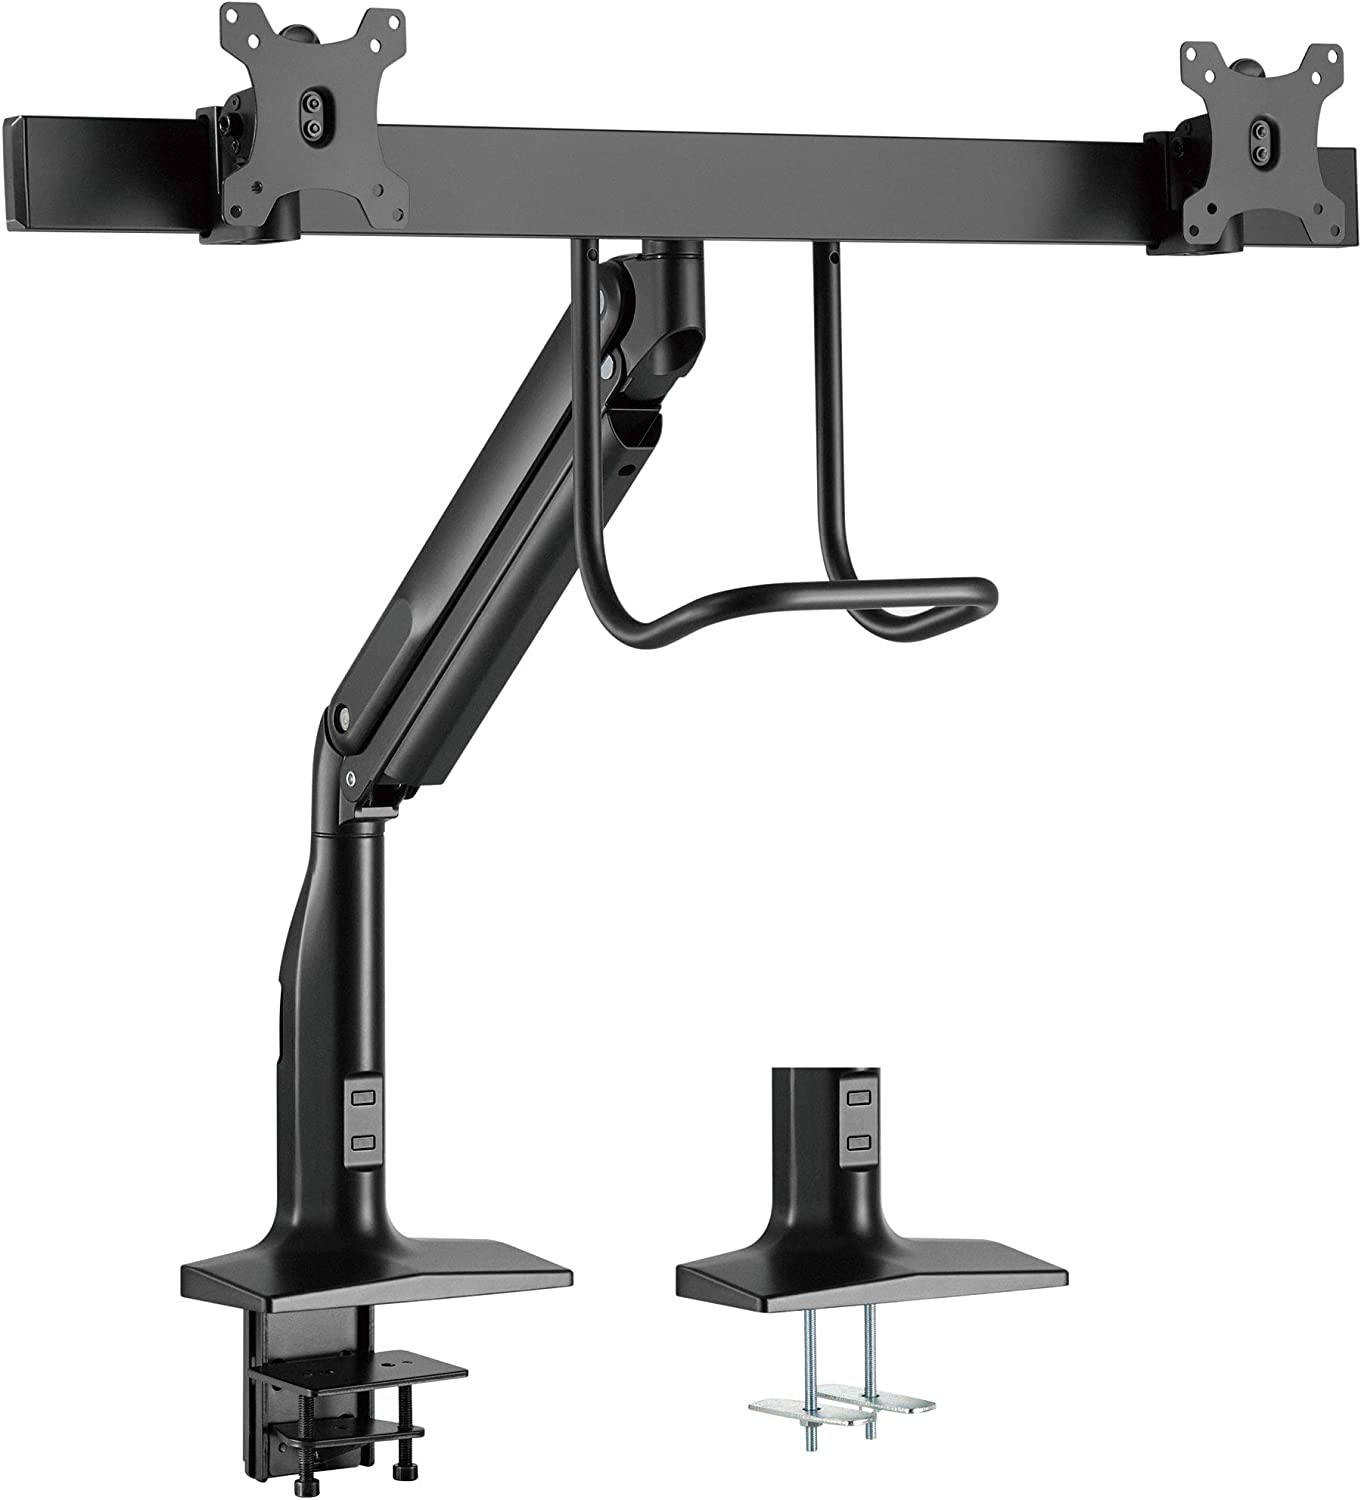 VIVO 17 to 32 inch Aluminum Dual Monitor Articulating Pneumatic Arm Mount with Pull Handle, Clamp-on Desk Stand, Fits 2 Screens with Max VESA 100x100, Black, STAND-V102H